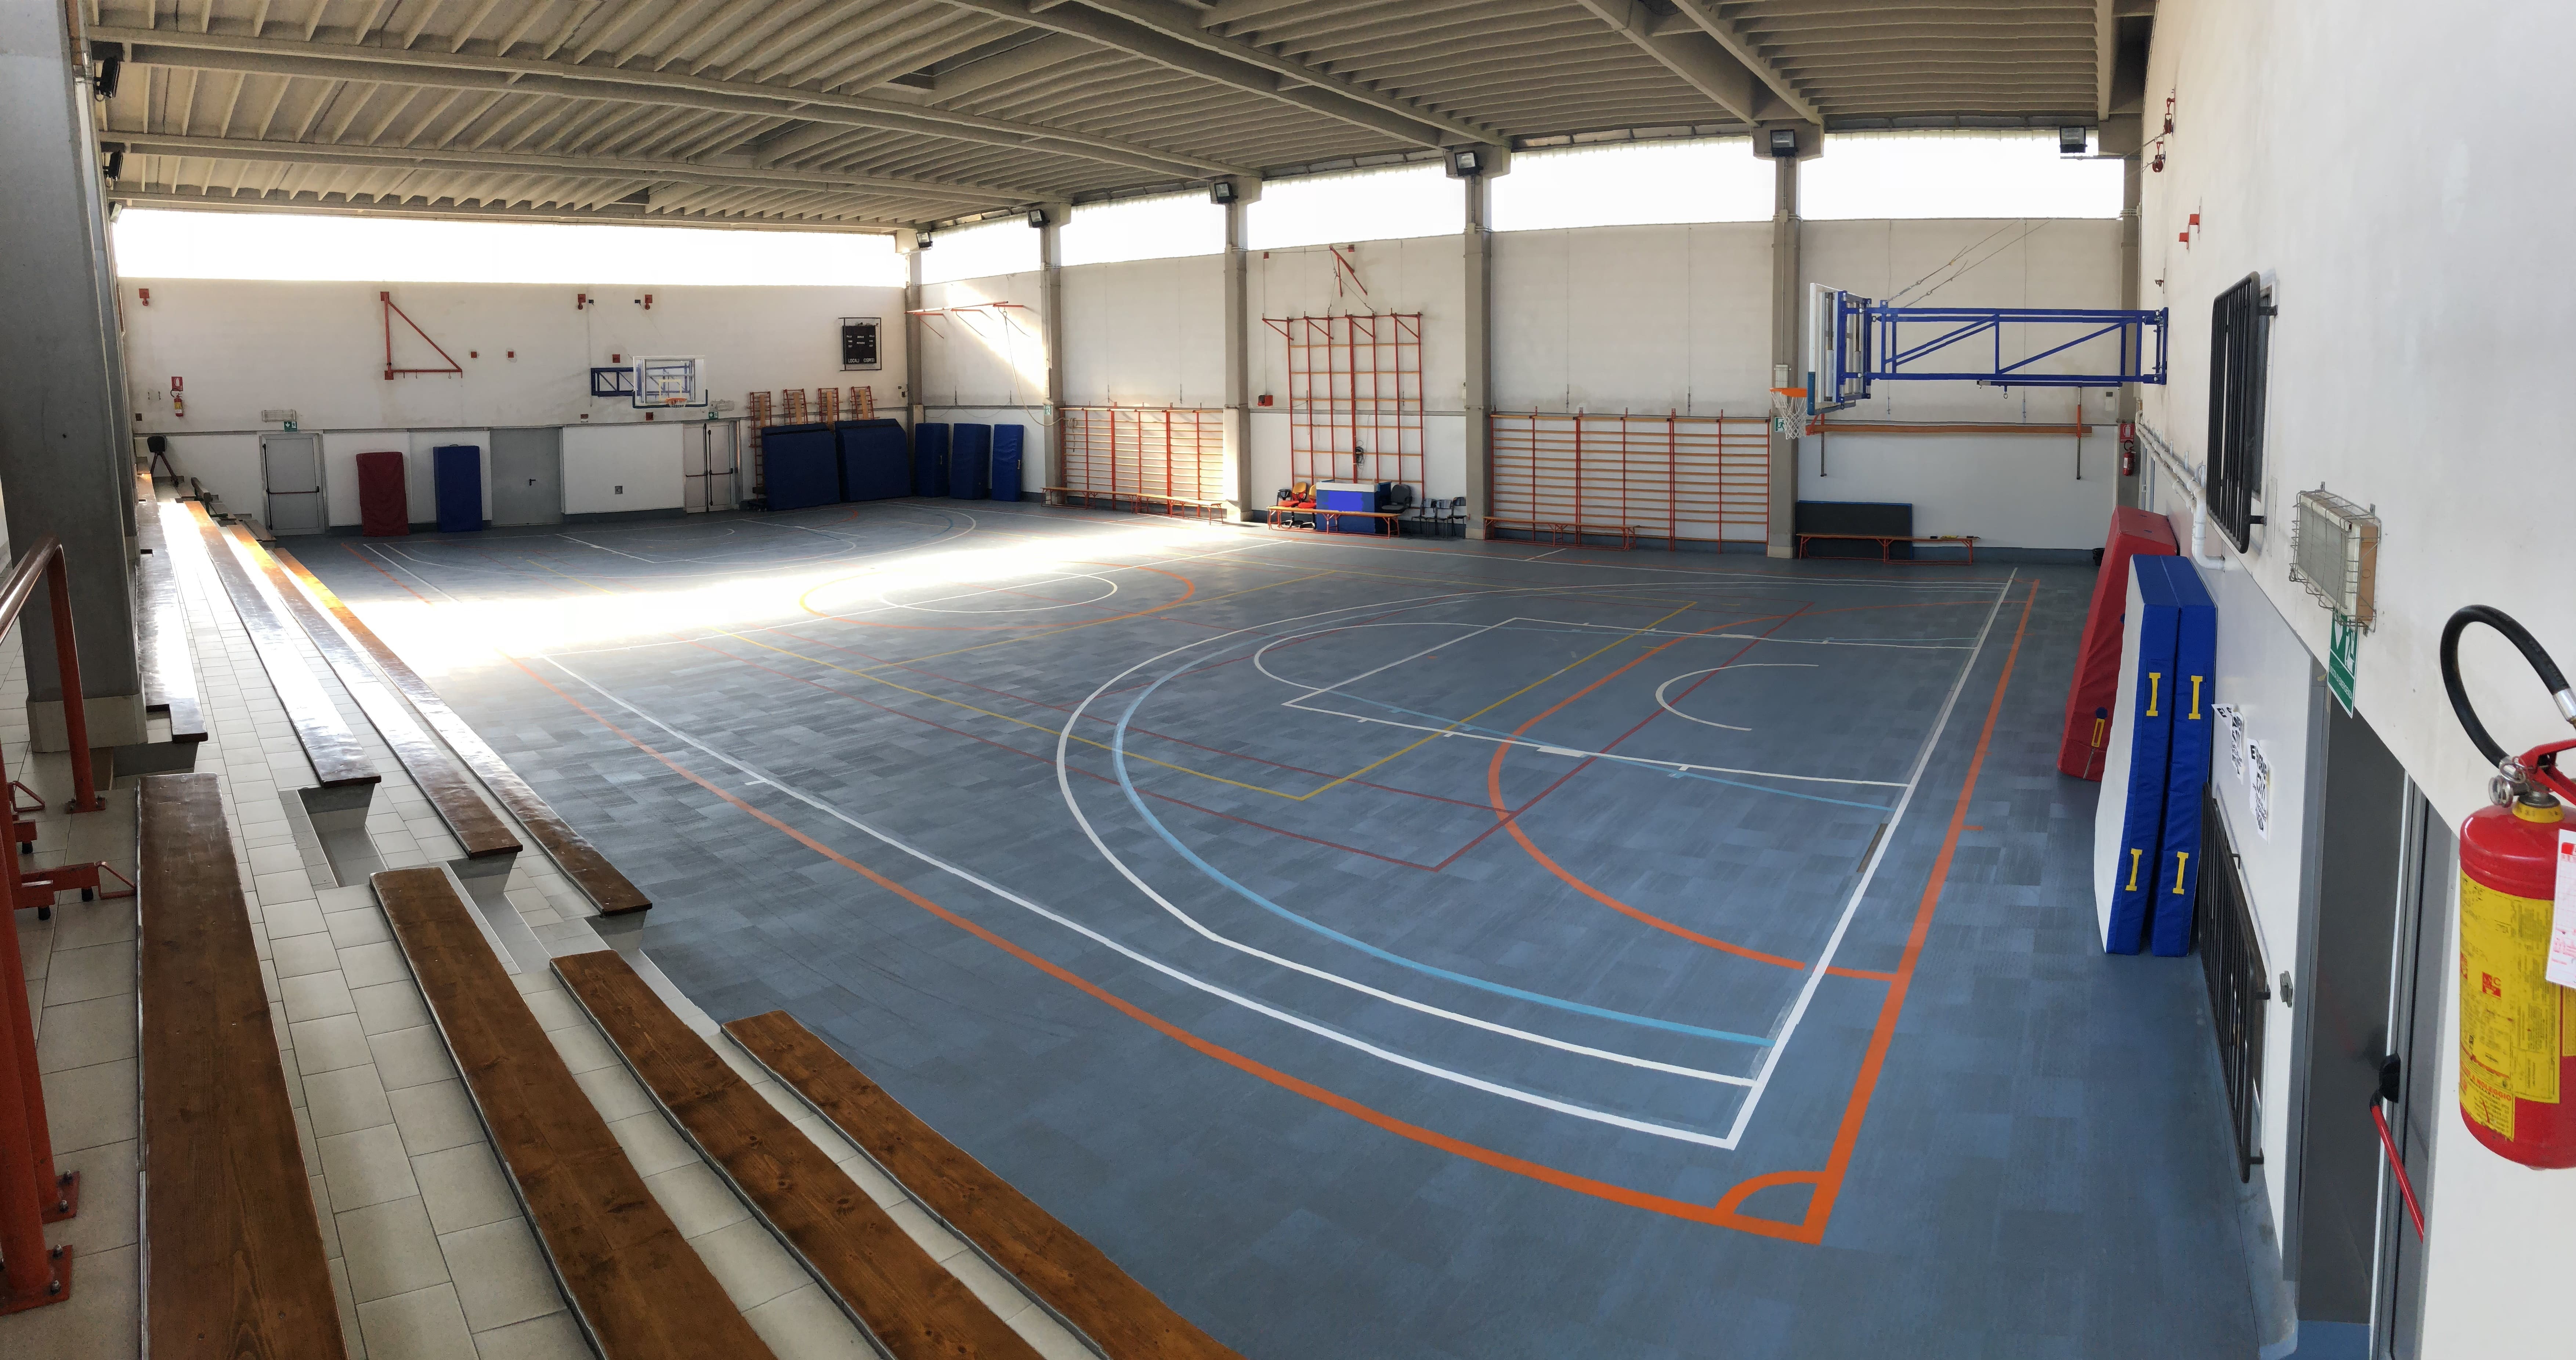 What the sports facility looked like